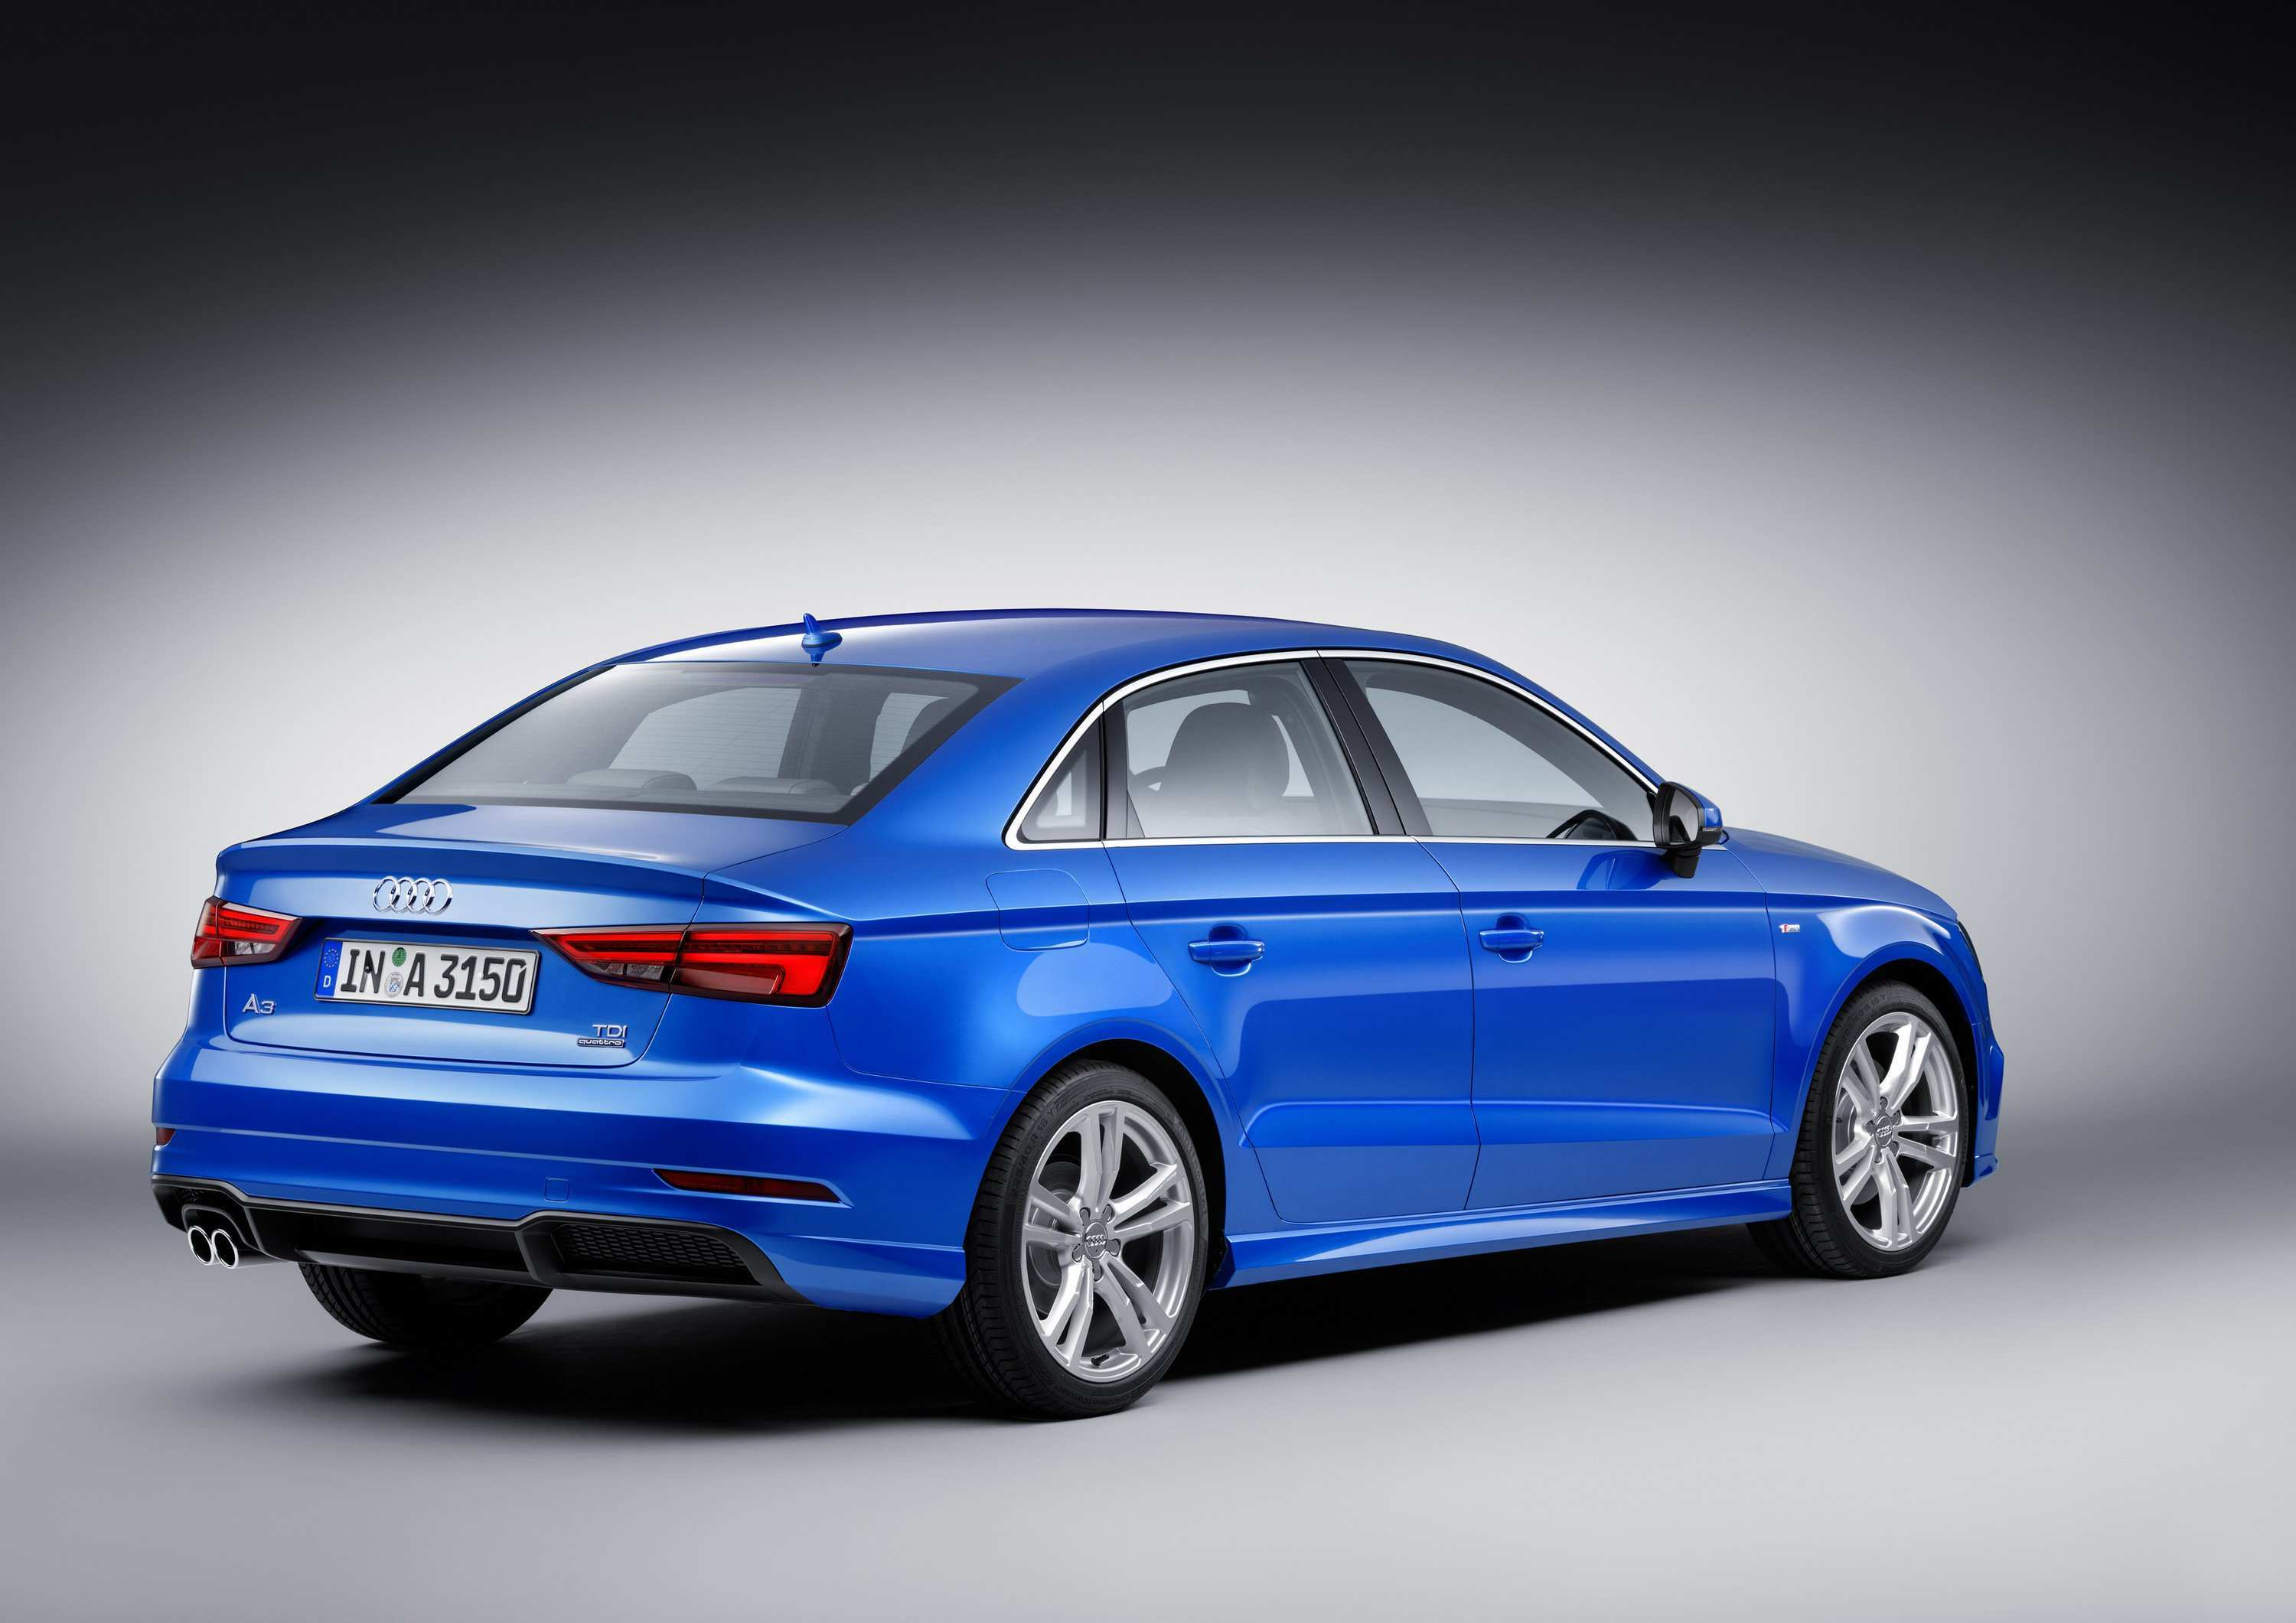 28 Best Review Audi A3 S Line 2020 Picture by Audi A3 S Line 2020